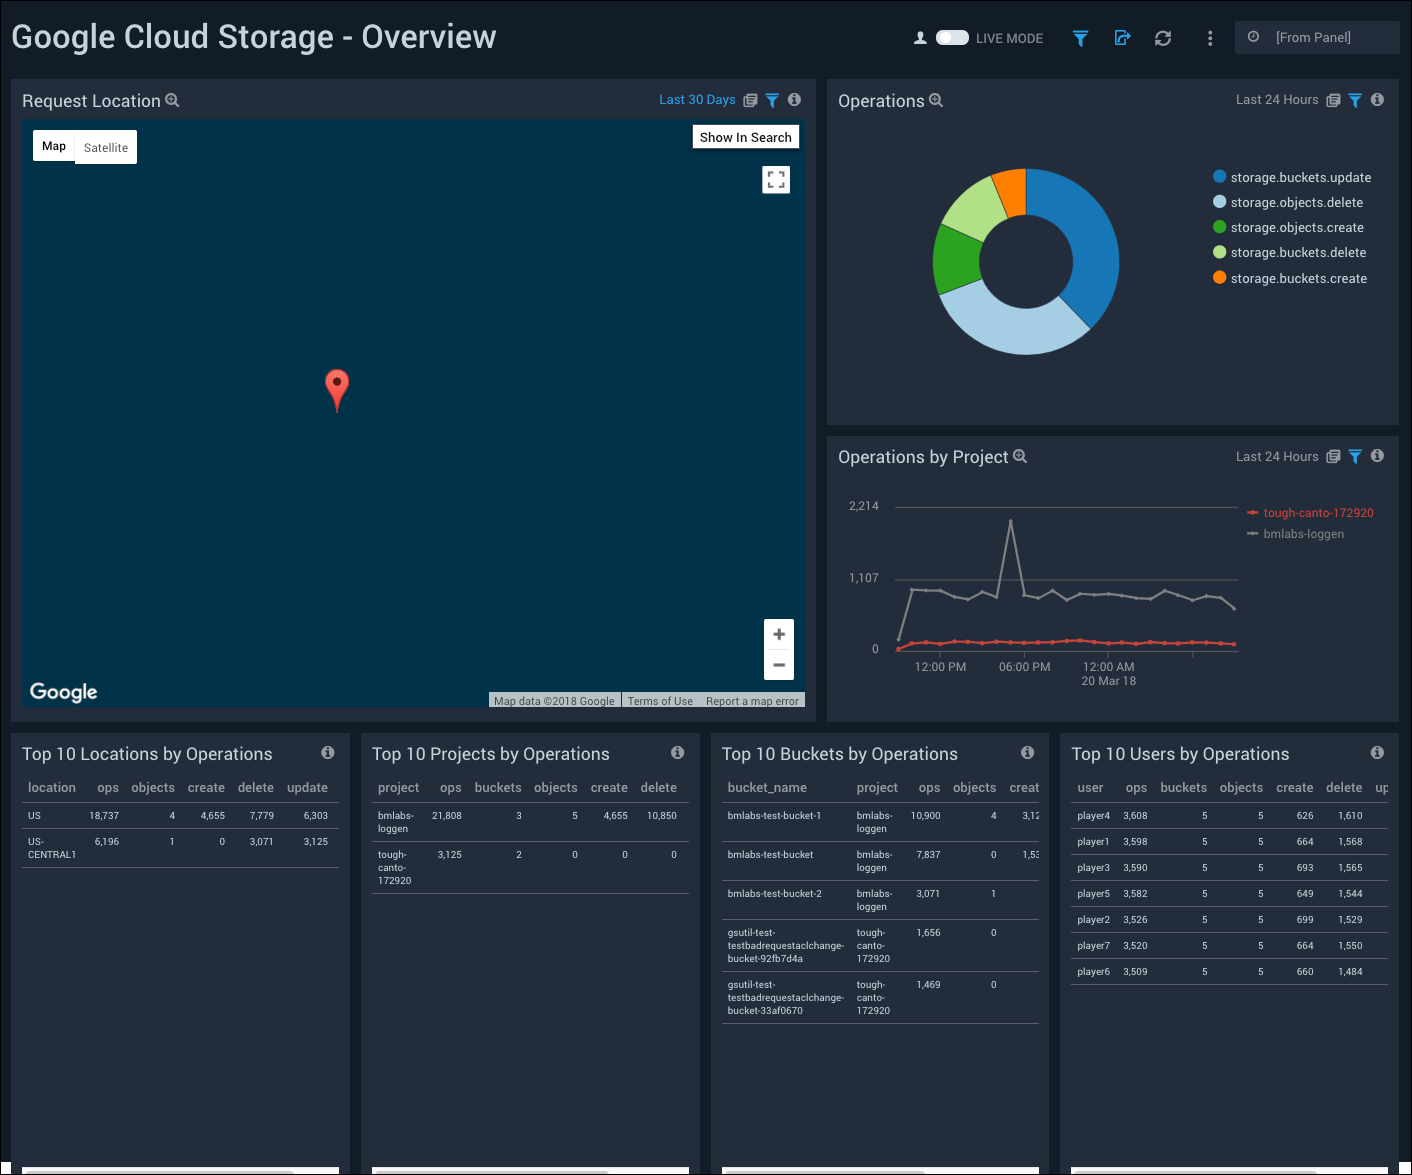 new product features and announcements sumo logic